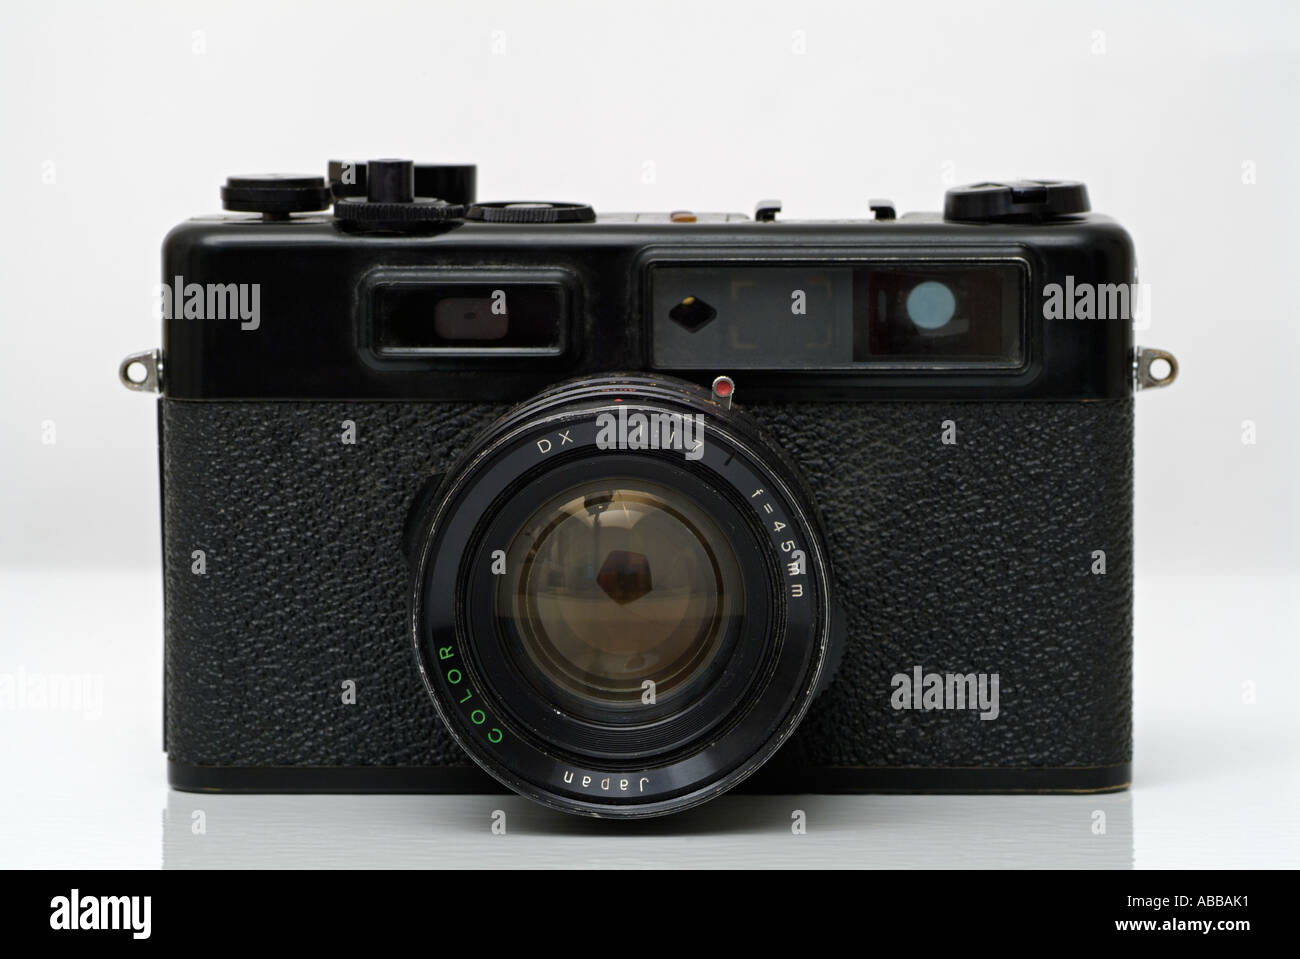 Camera Traditional 35mm Rangefinder Camera Against a White Background - Stock Image